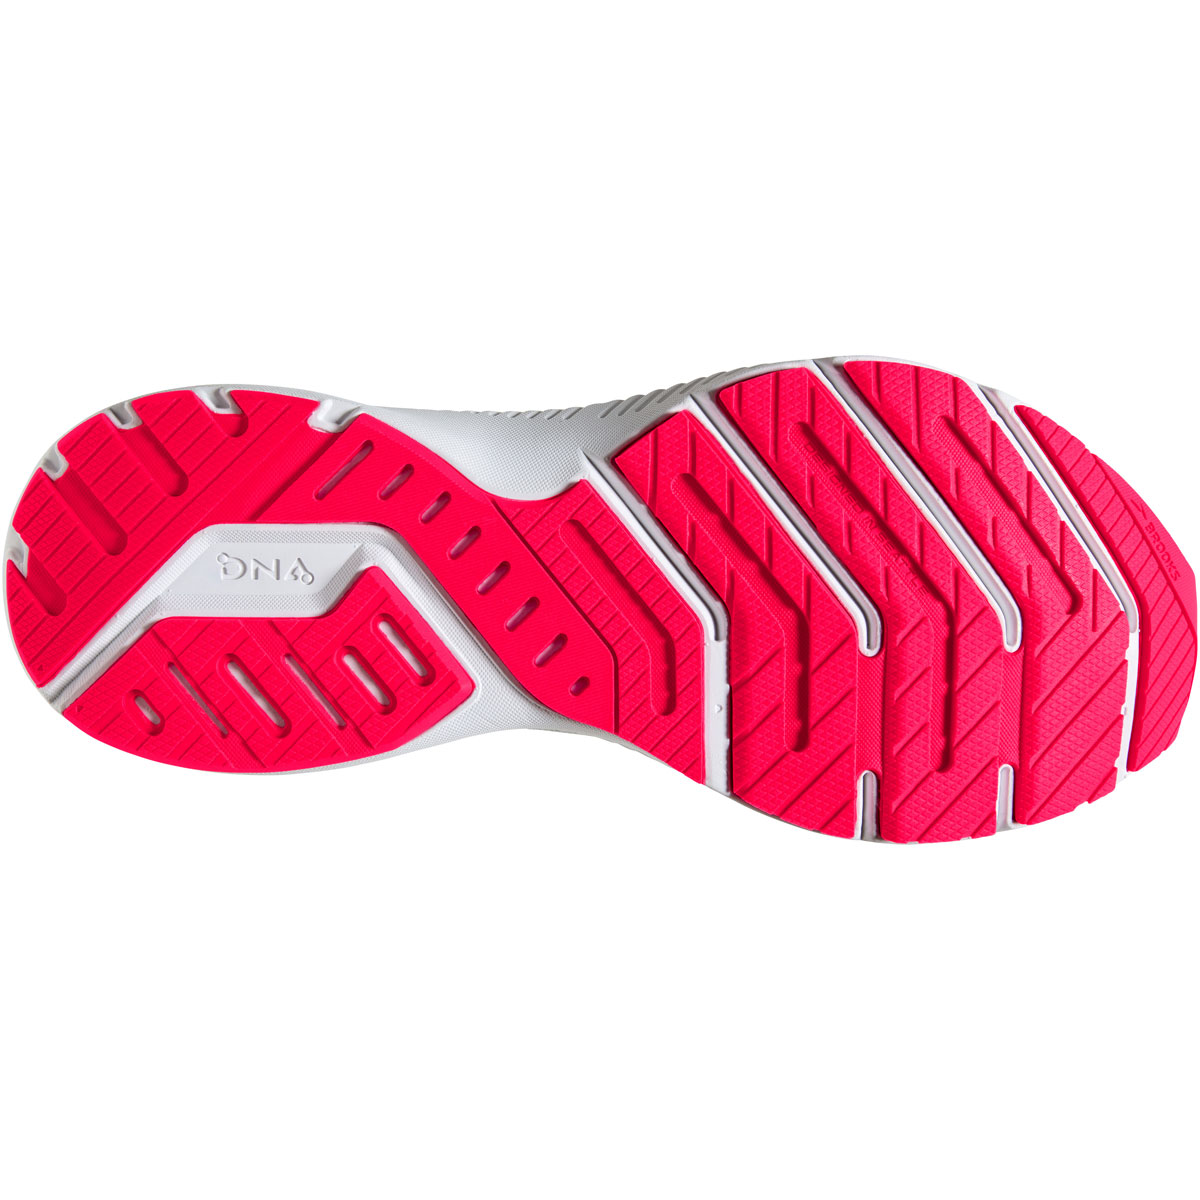 Women's Brooks Launch 8 Running Shoe - Color: Ice Flow/Navy/Pink - Size: 5 - Width: Regular, Ice Flow/Navy/Pink, large, image 3